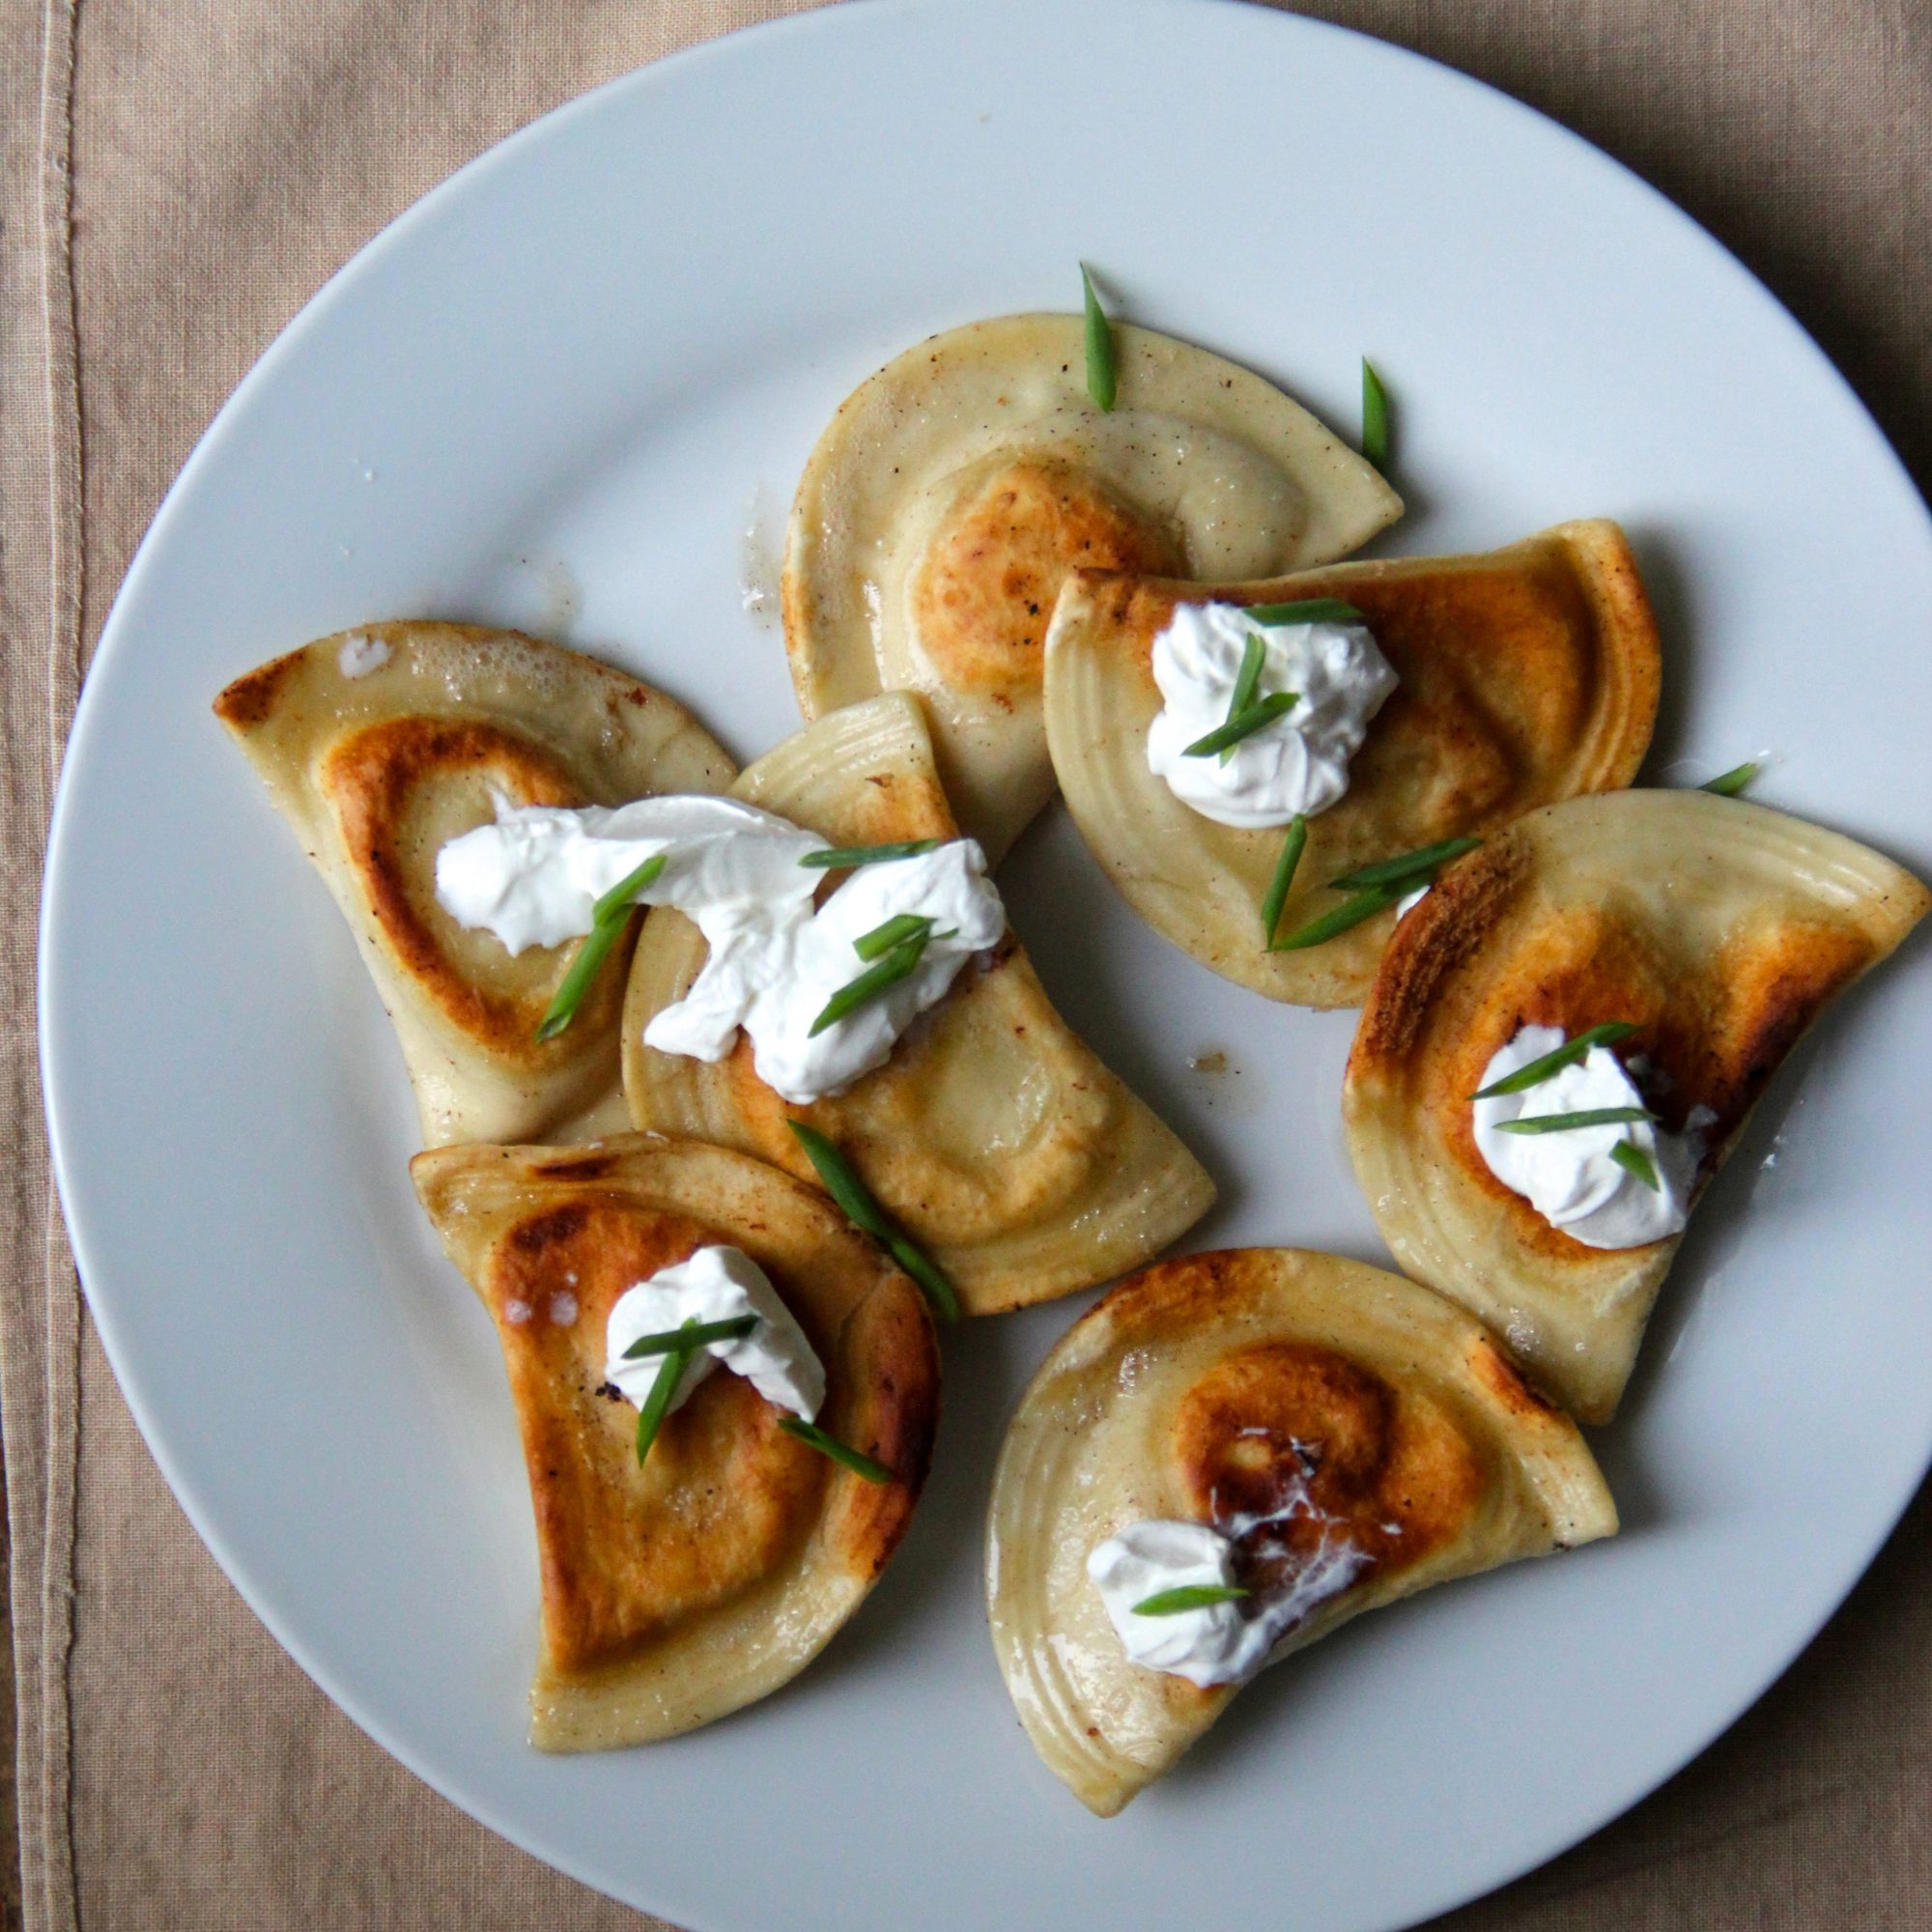 March 18: Pierogi